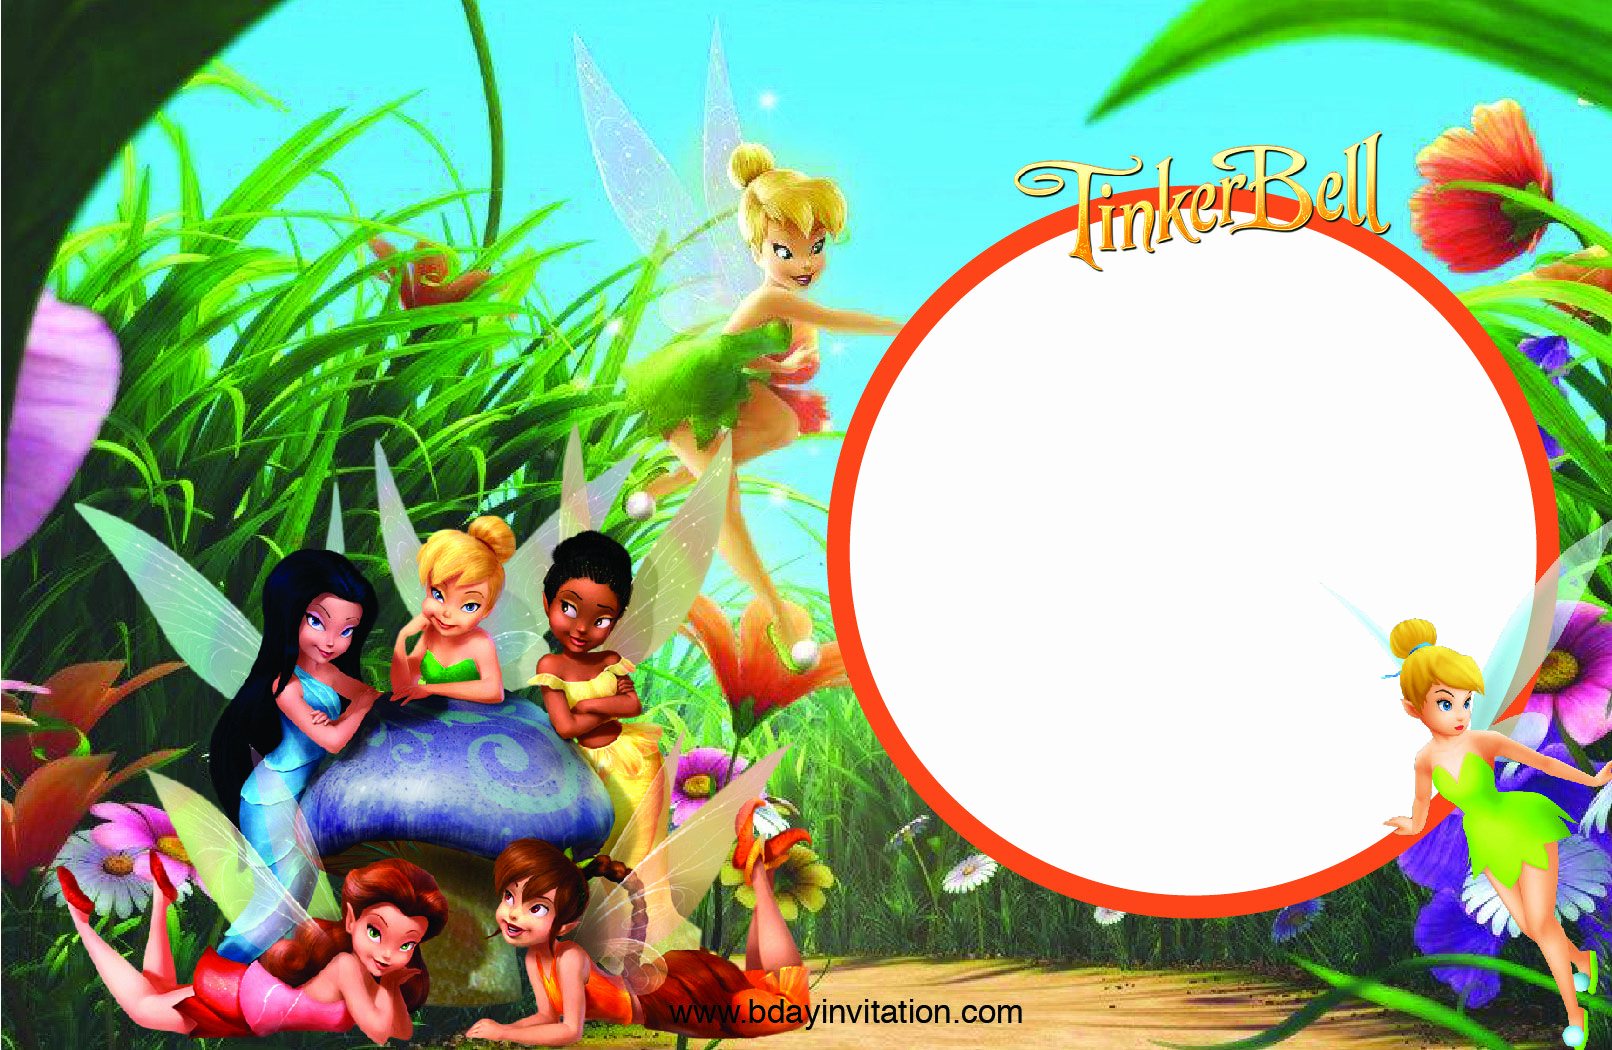 Tinkerbell Invitation Template Free Inspirational Awesome Free Printable Disney Tinkerbell Birthday